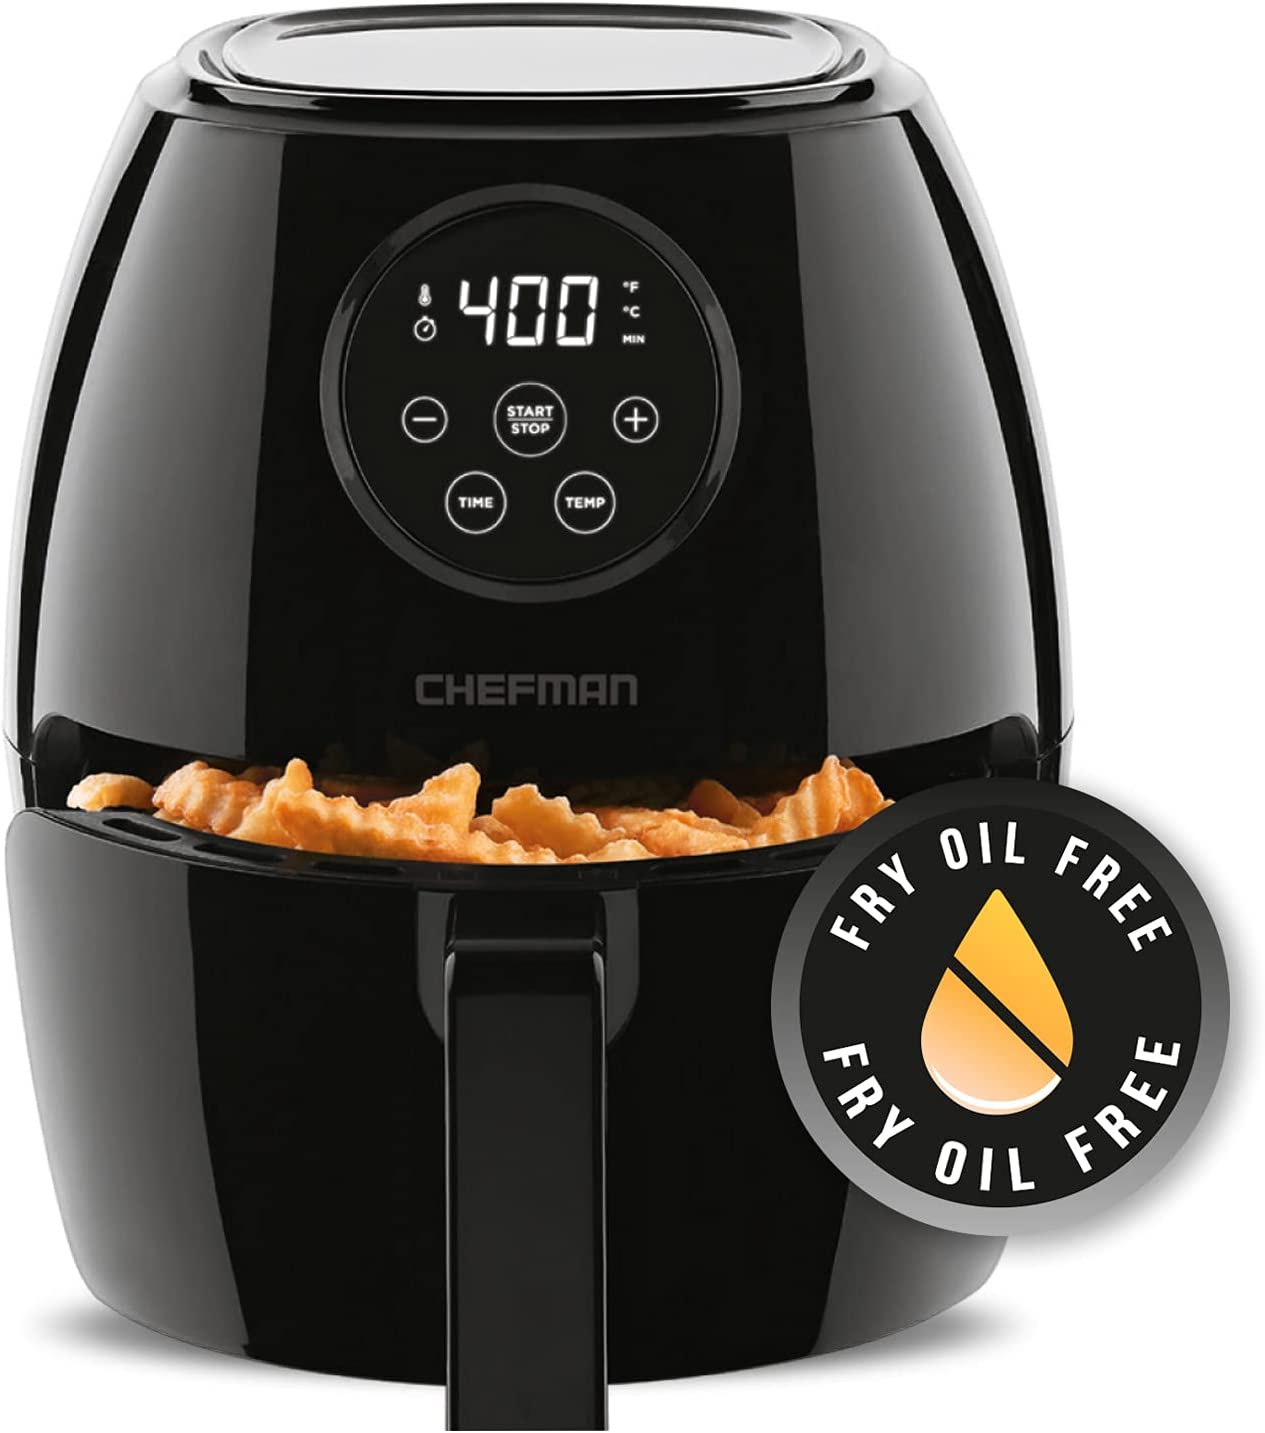 Chefman TurboFry 3.7 Quart Popular Air Fryer Touch Digital Oven W Scree Free shipping on posting reviews